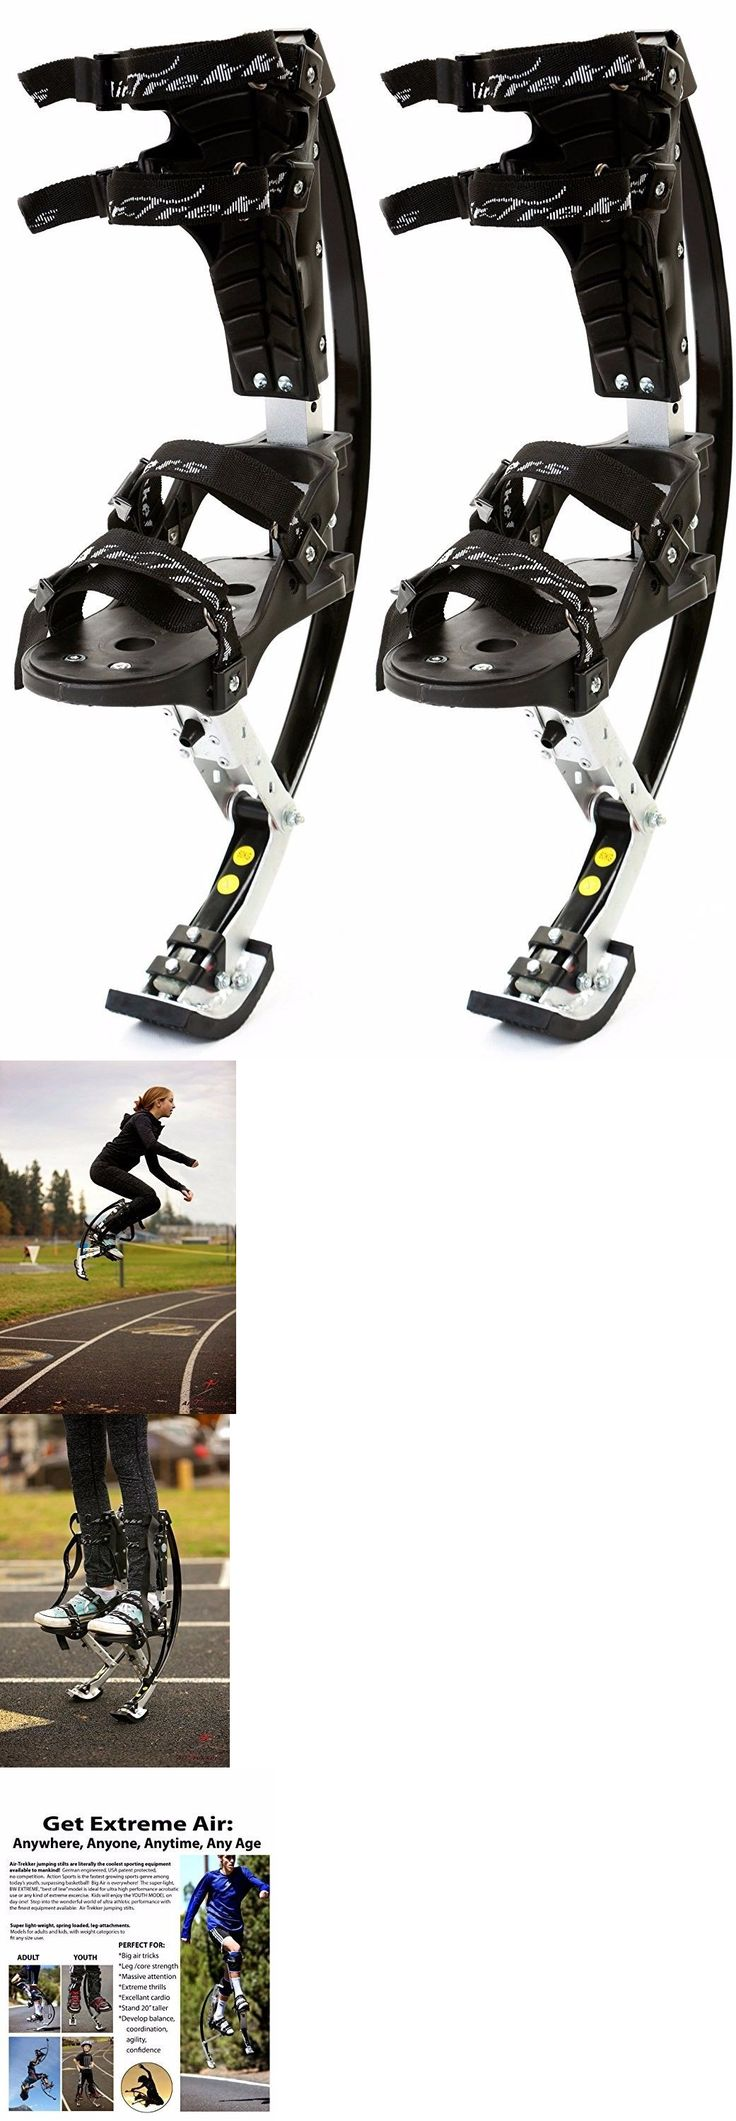 Other Outdoor Sports 159048: New Air Trekkers Jumping Stilts Jump Shoes Youth Large 95-120 Lbs -> BUY IT NOW ONLY: $96 on eBay!